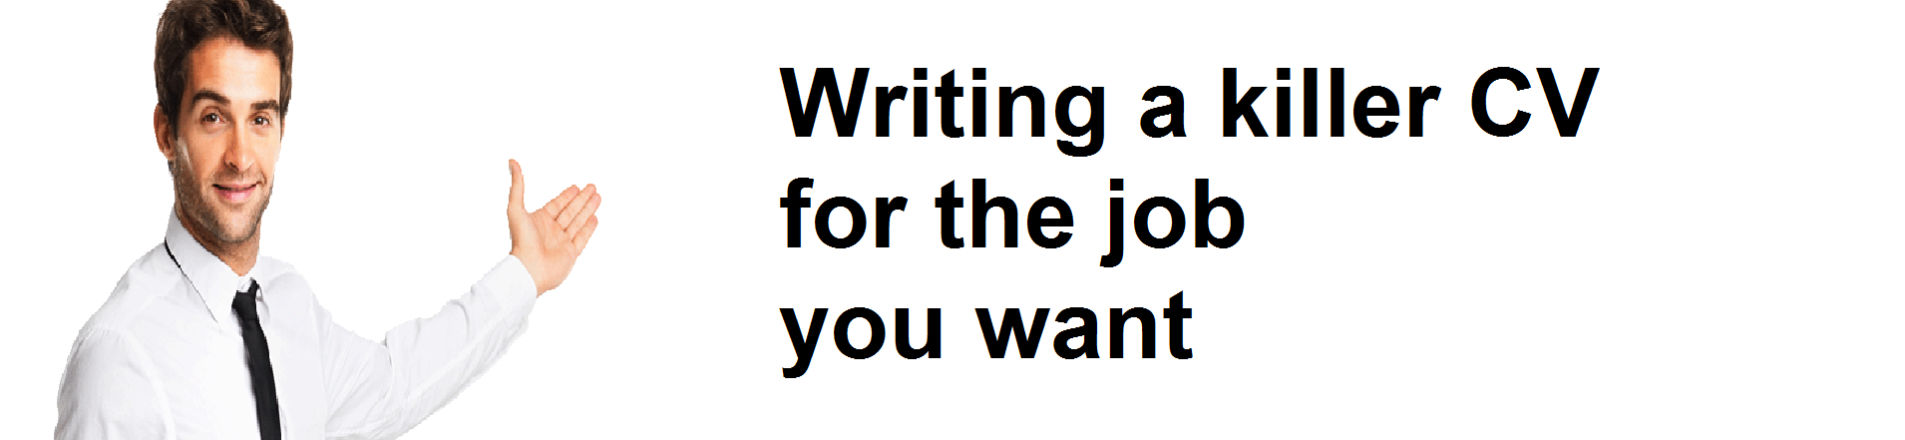 Writing a killer CV for the job you want